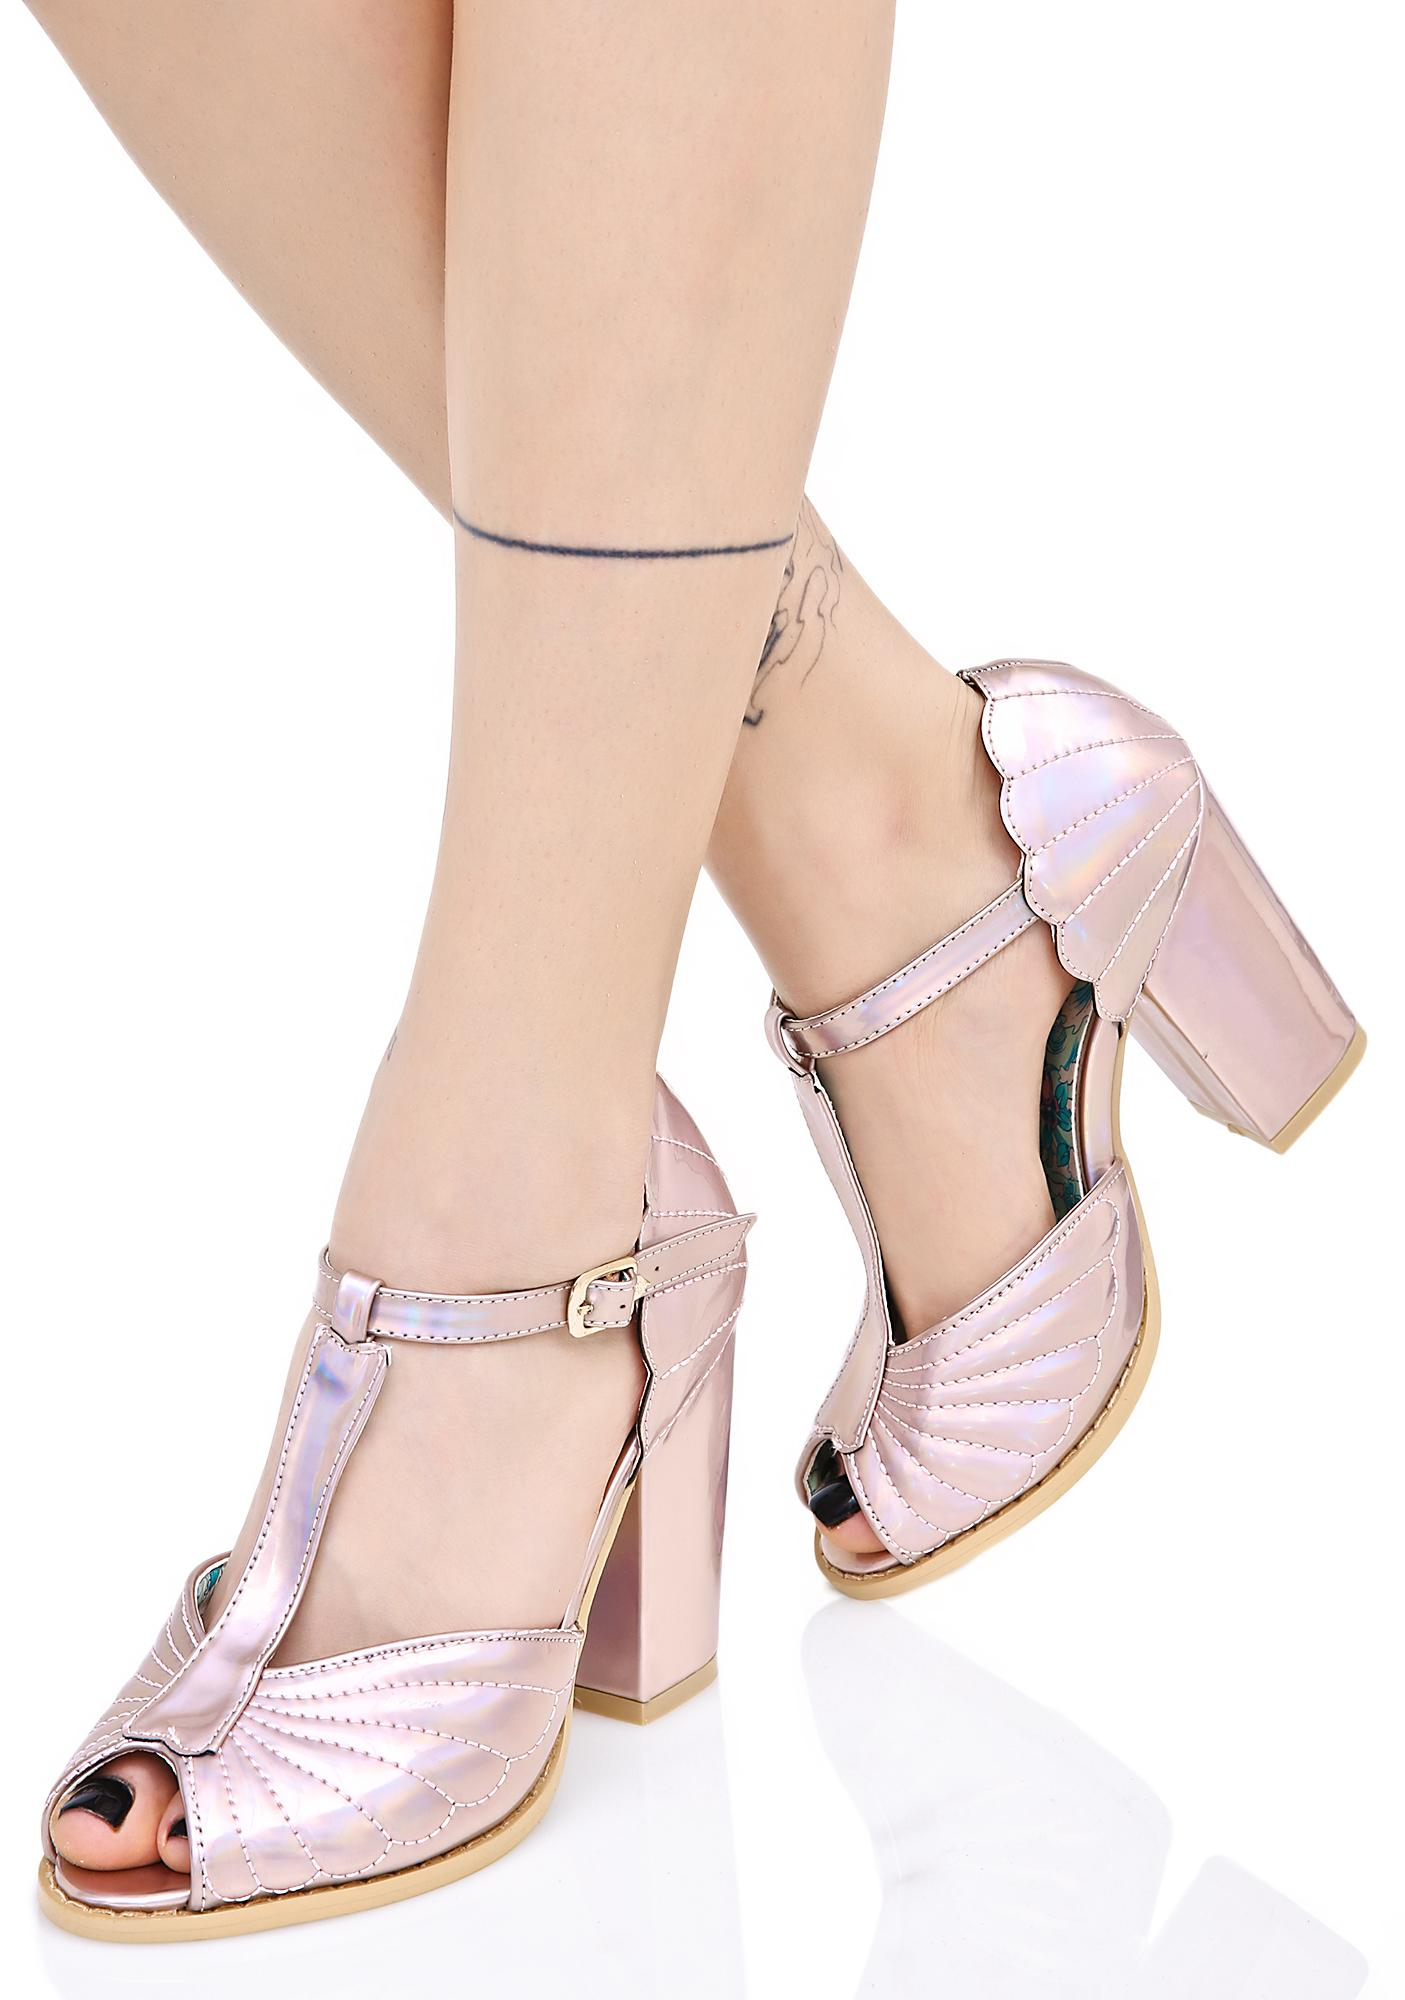 58659b79455 Iron Fist Mother Of Pearl Heels